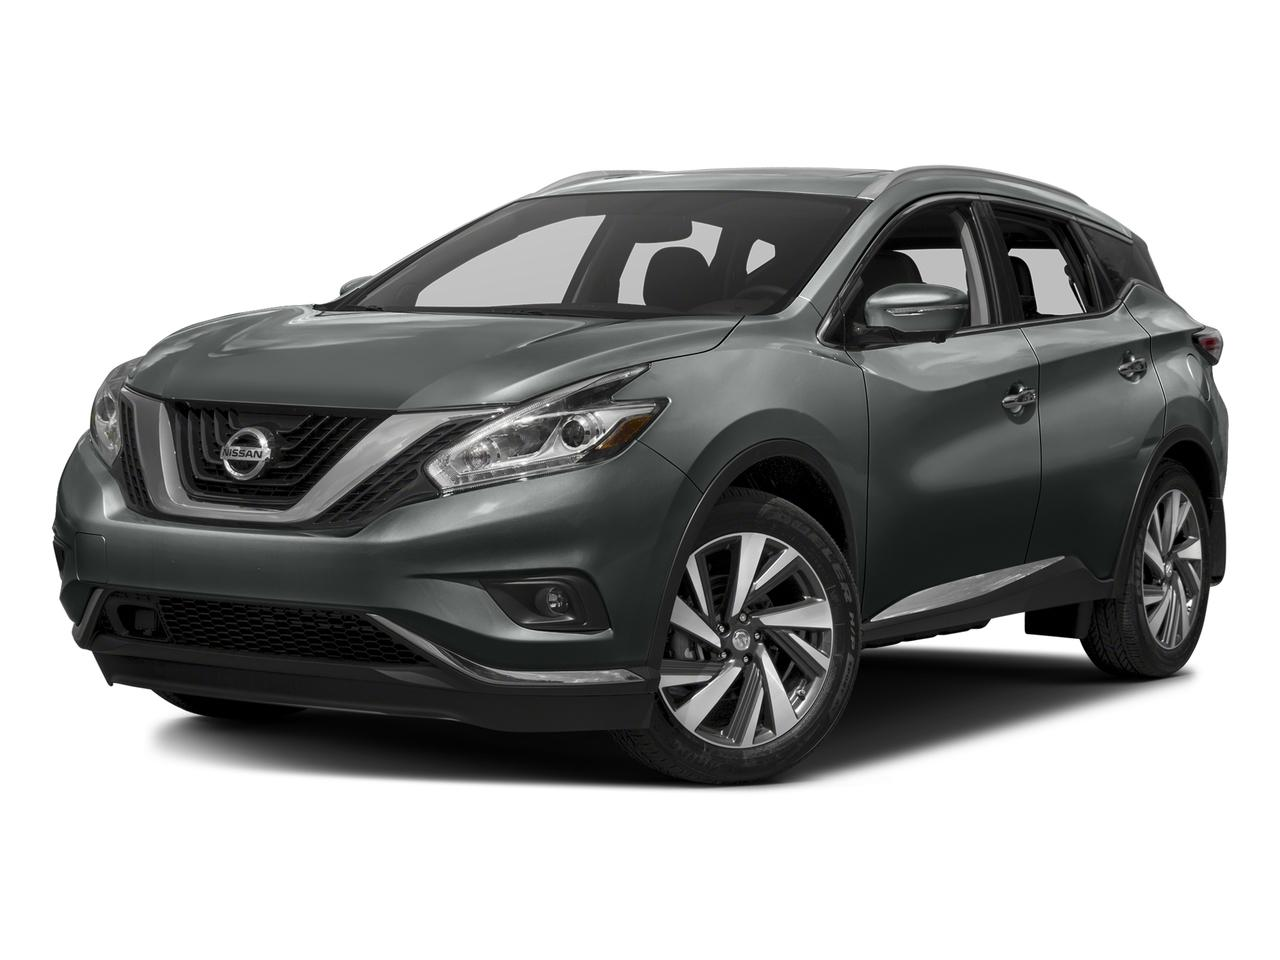 2016 Nissan Murano Vehicle Photo in Pawling, NY 12564-3219